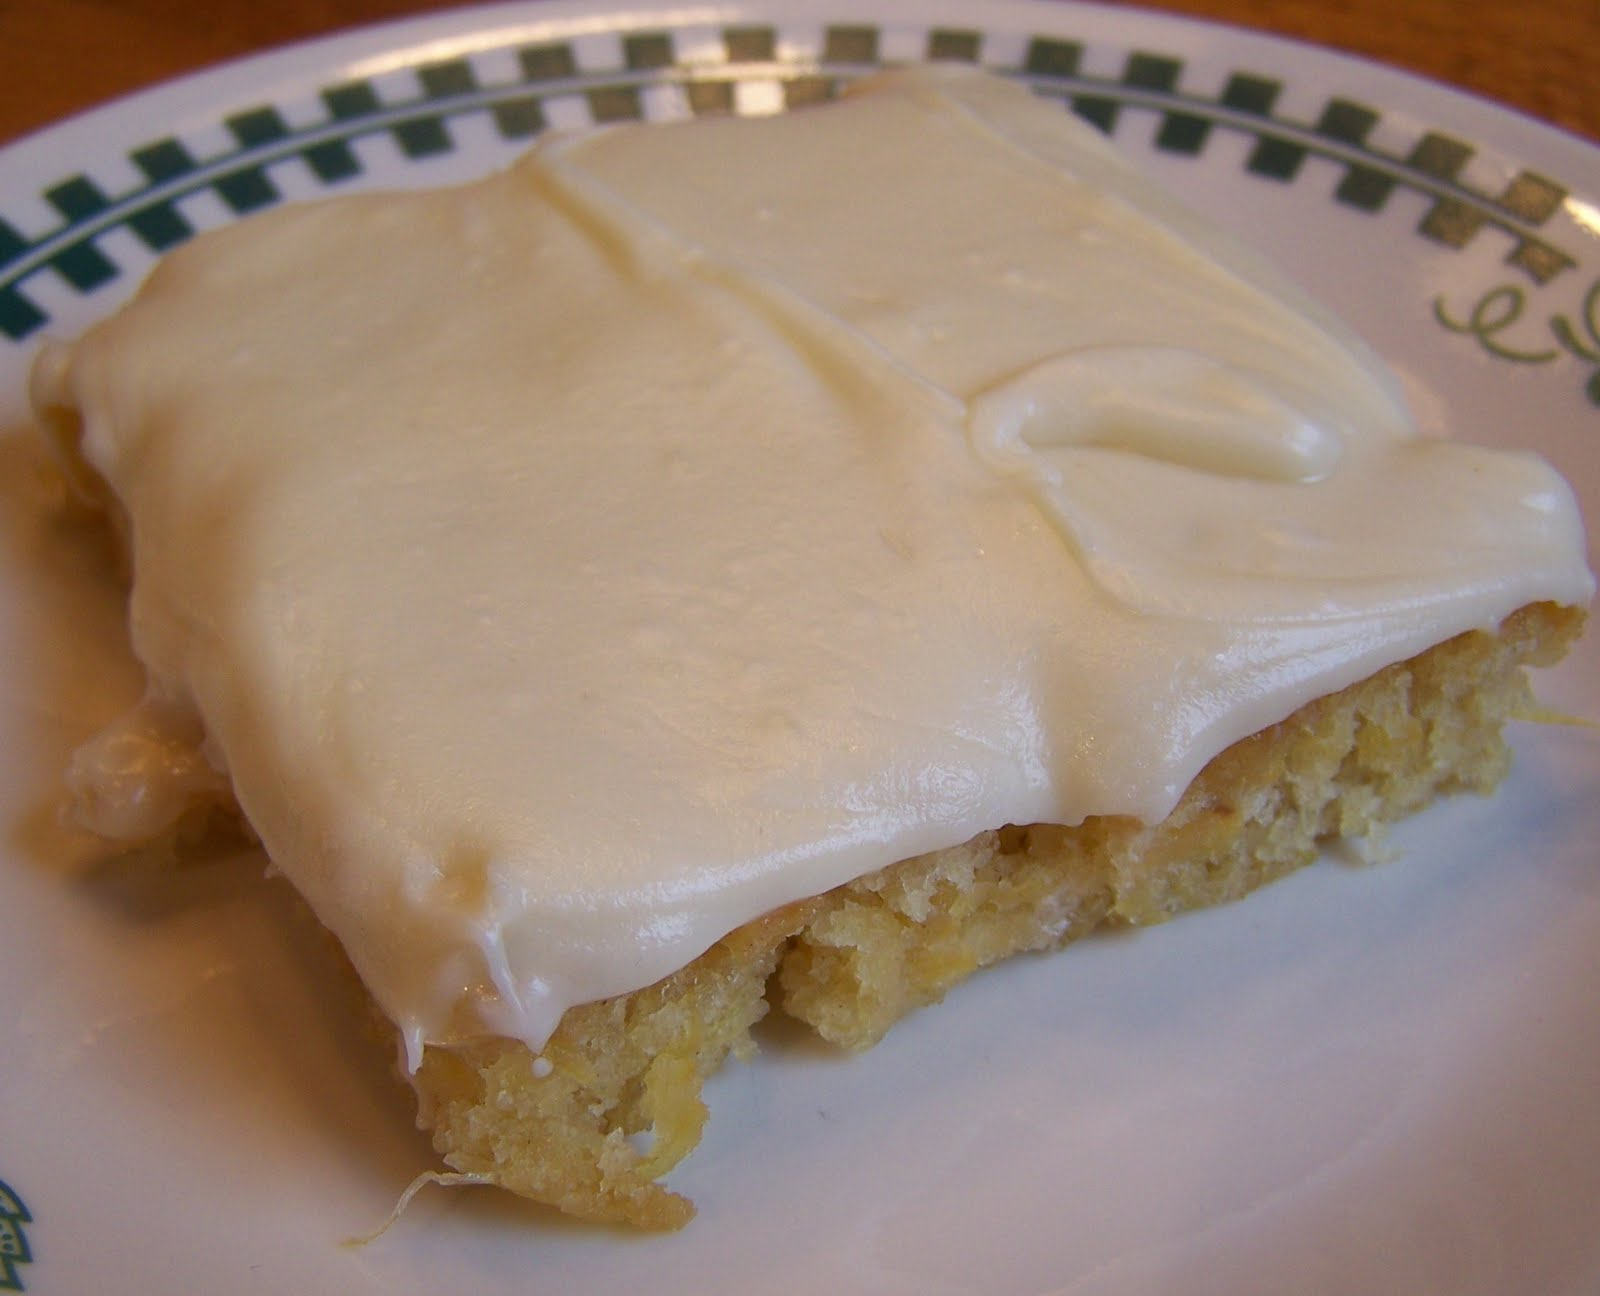 ... -and-True cooking with Heidi: Pineapple Cake with Cream Cheese Icing